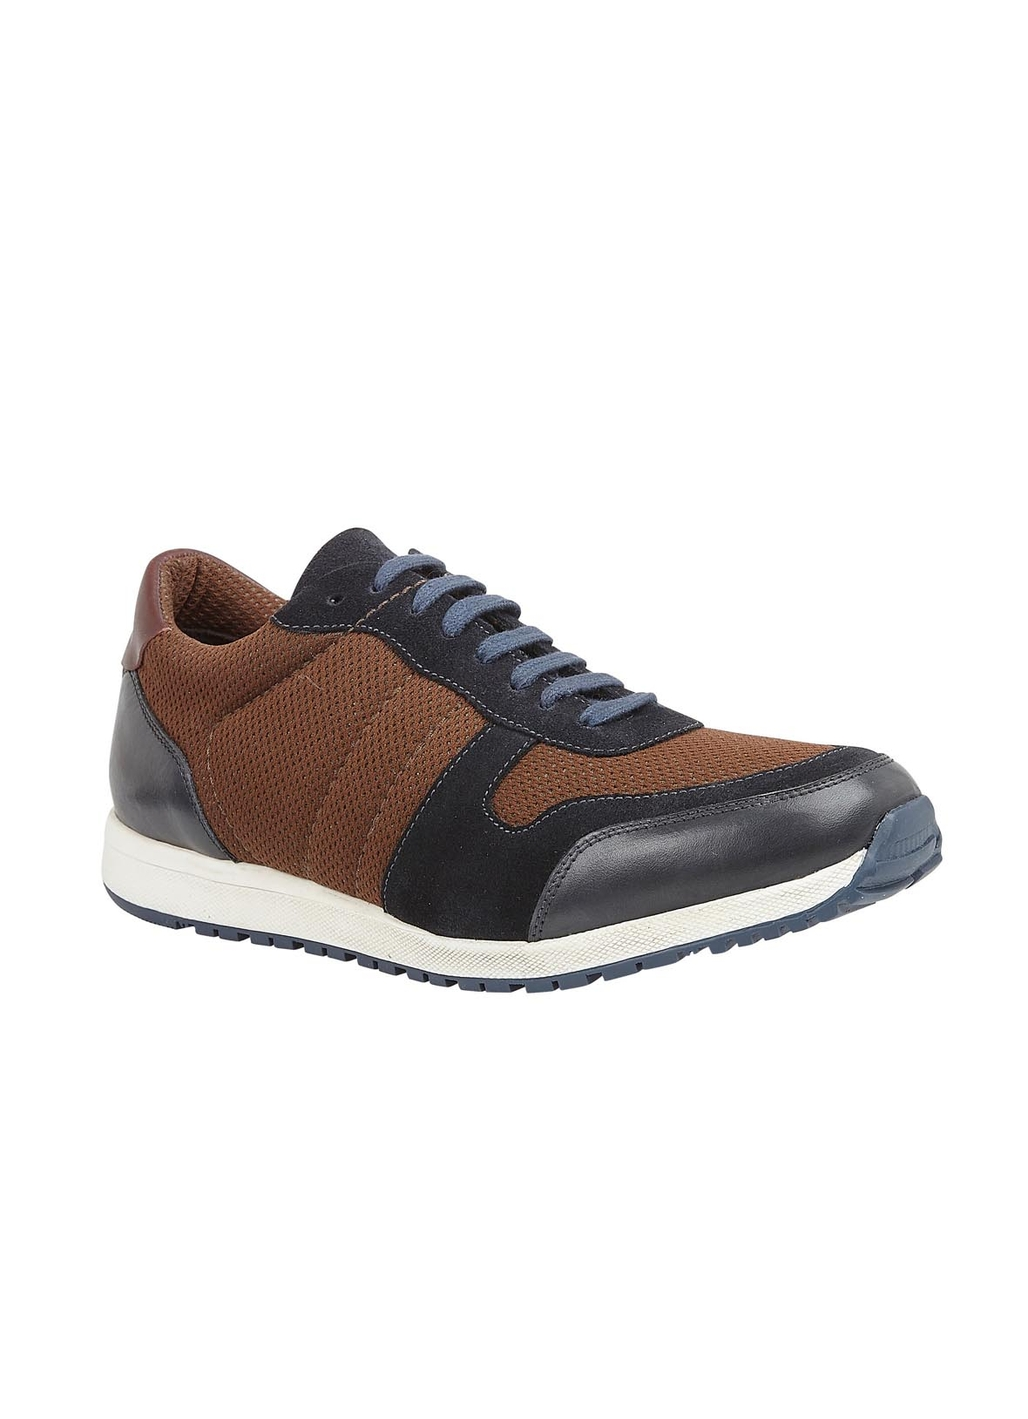 Lotus Barrie Leather Trainer Style Shoe in Navy